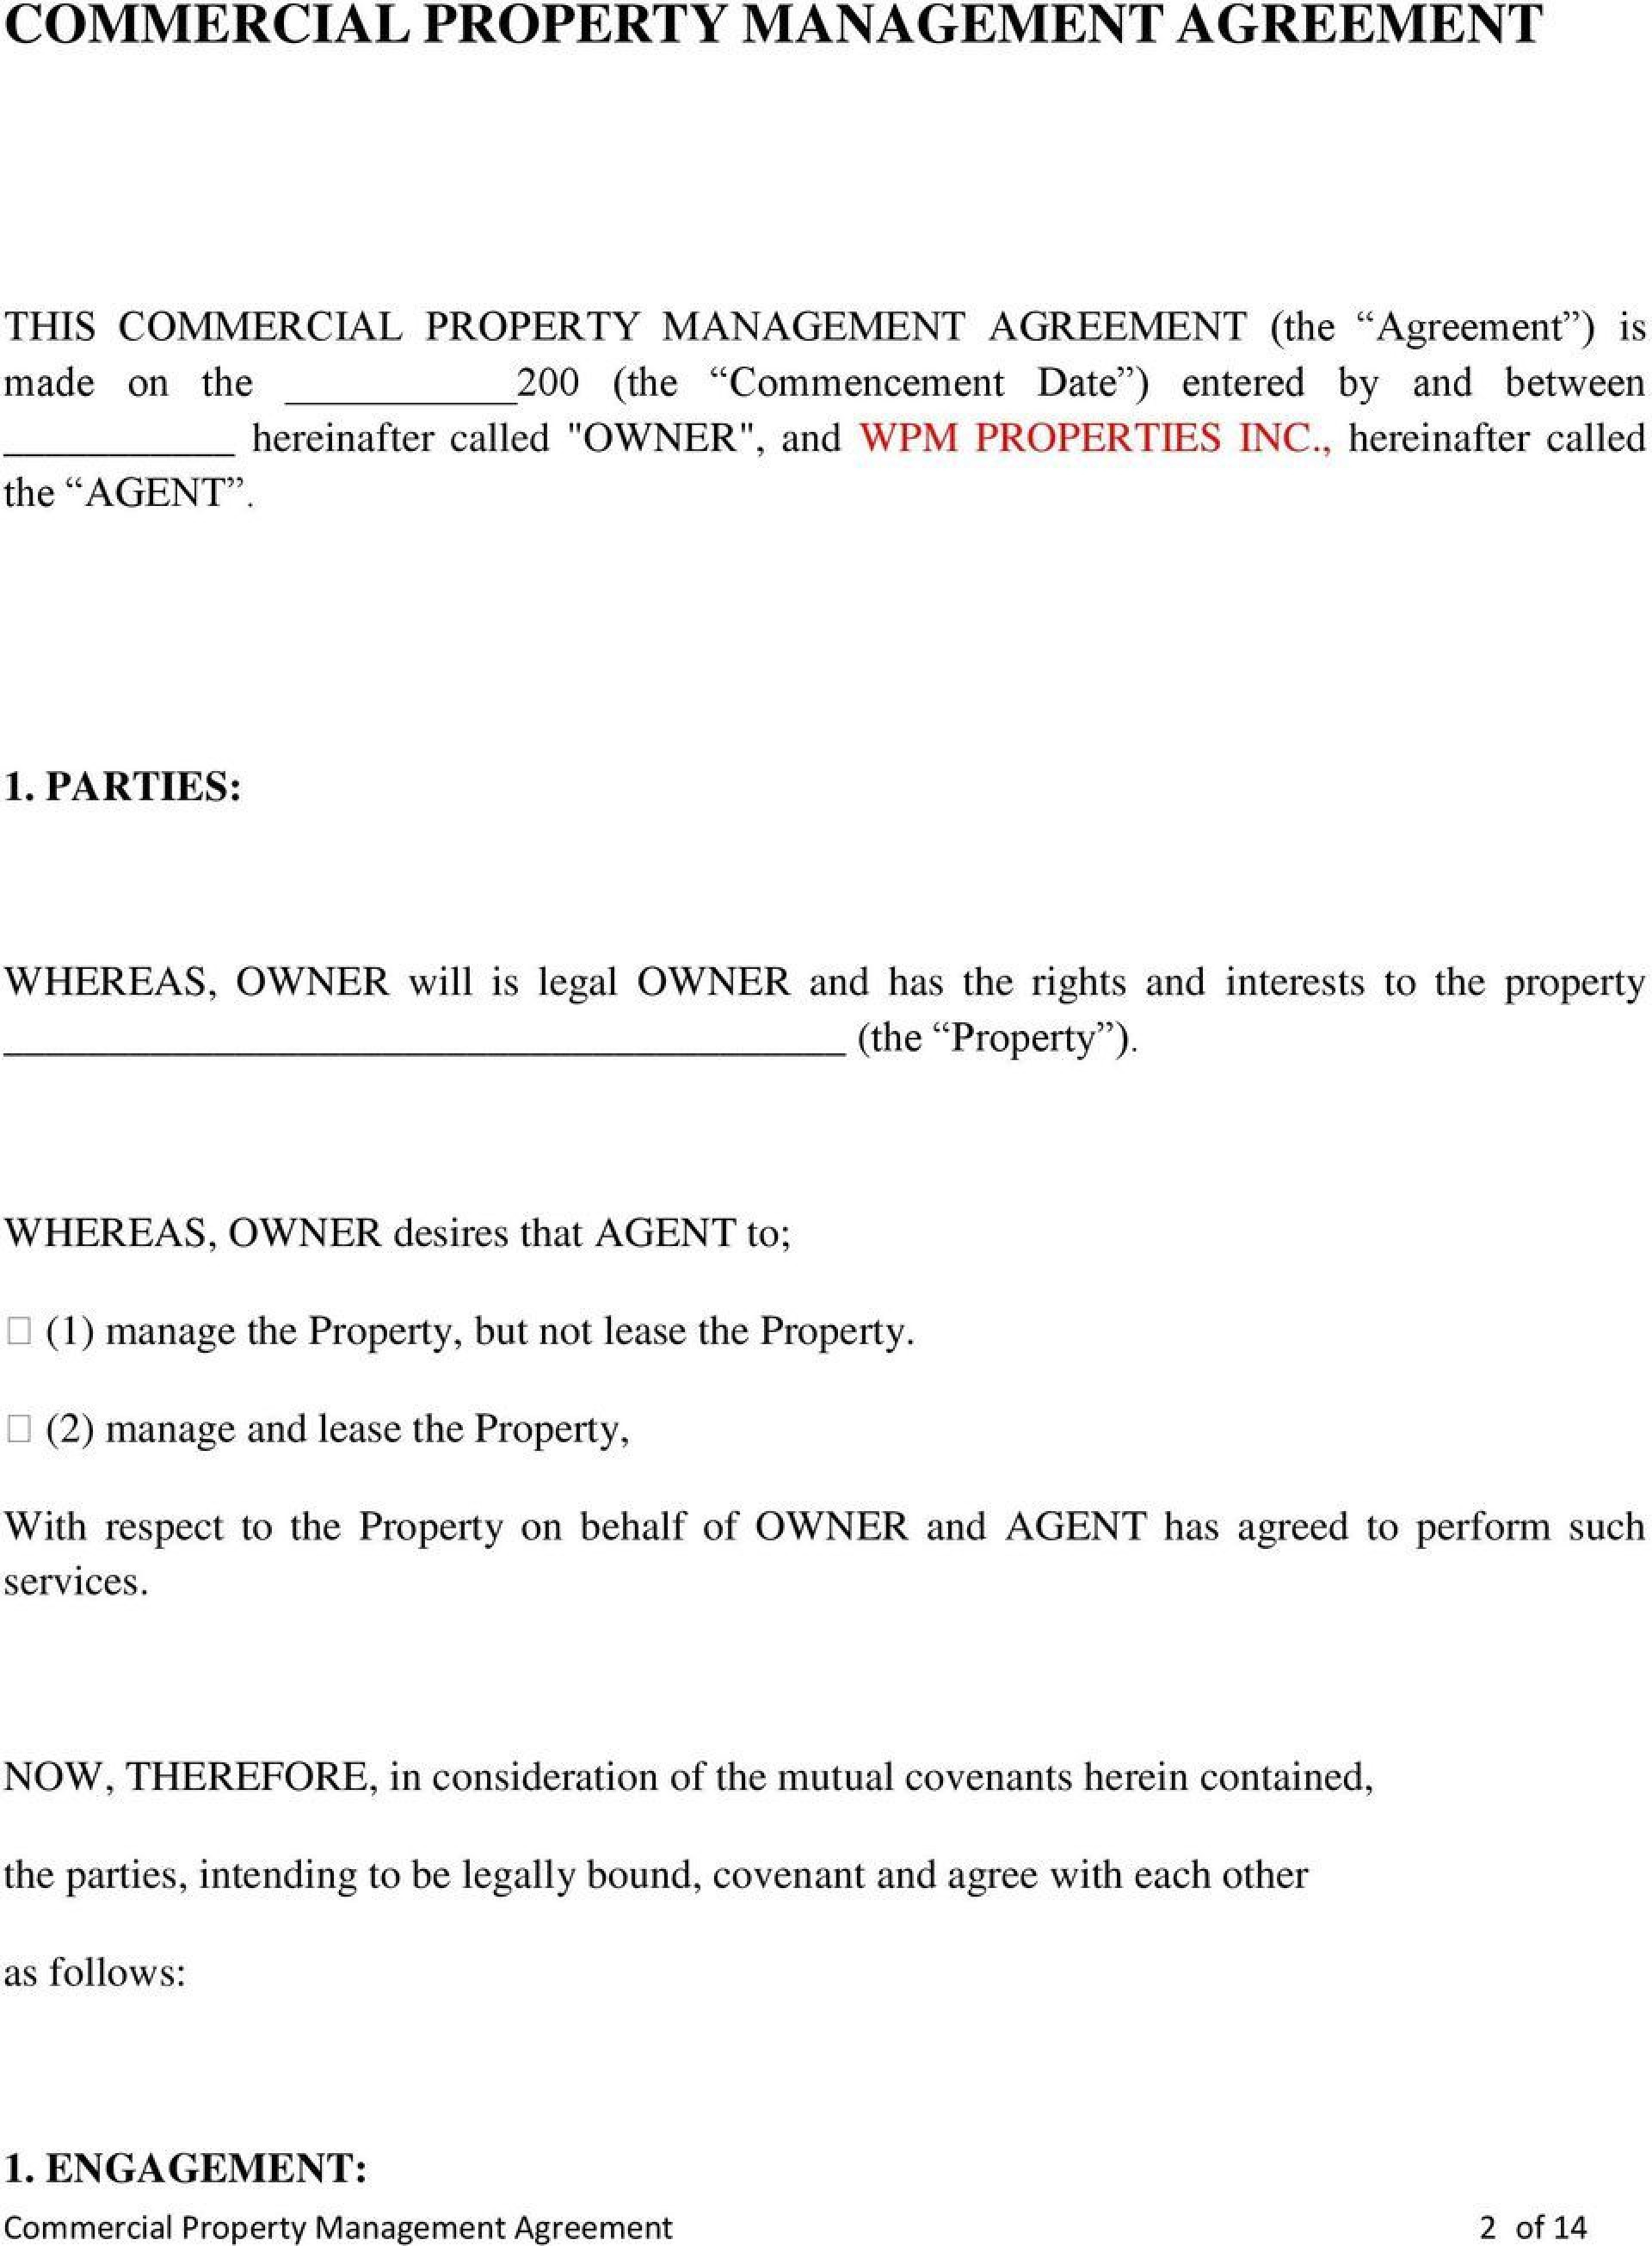 007 Unforgettable Property Management Contract Example Concept  Sample Agreement Form Template Pdf1920